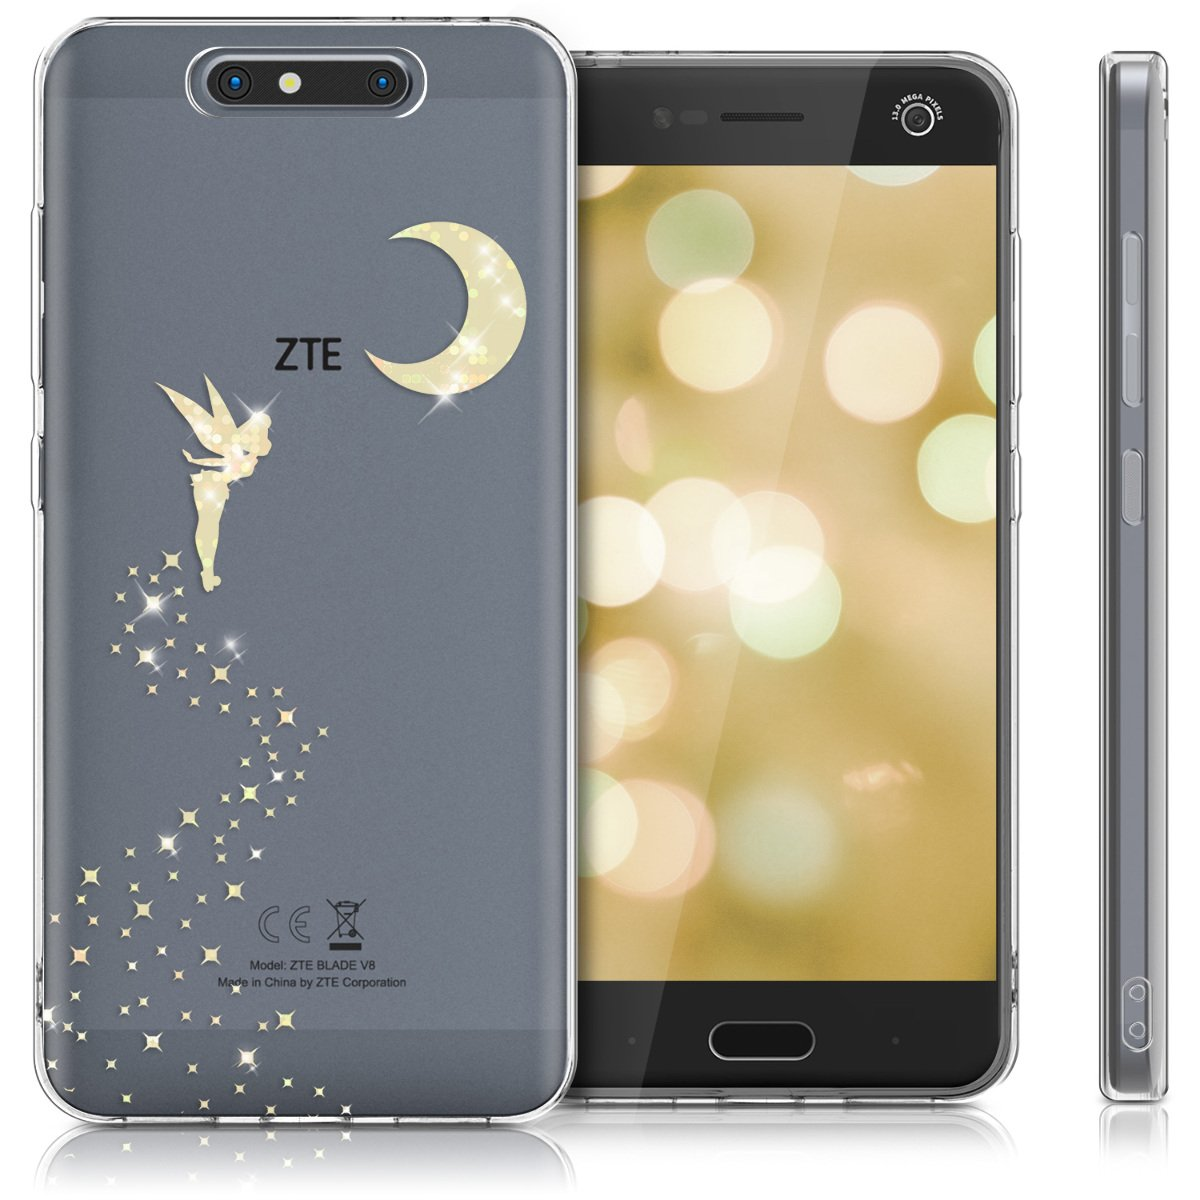 kwmobile TPU Case for ZTE Blade V8 - Soft TPU Silicone Cover - Crystal Clear Back Case IMD Design - Gold/Transparent